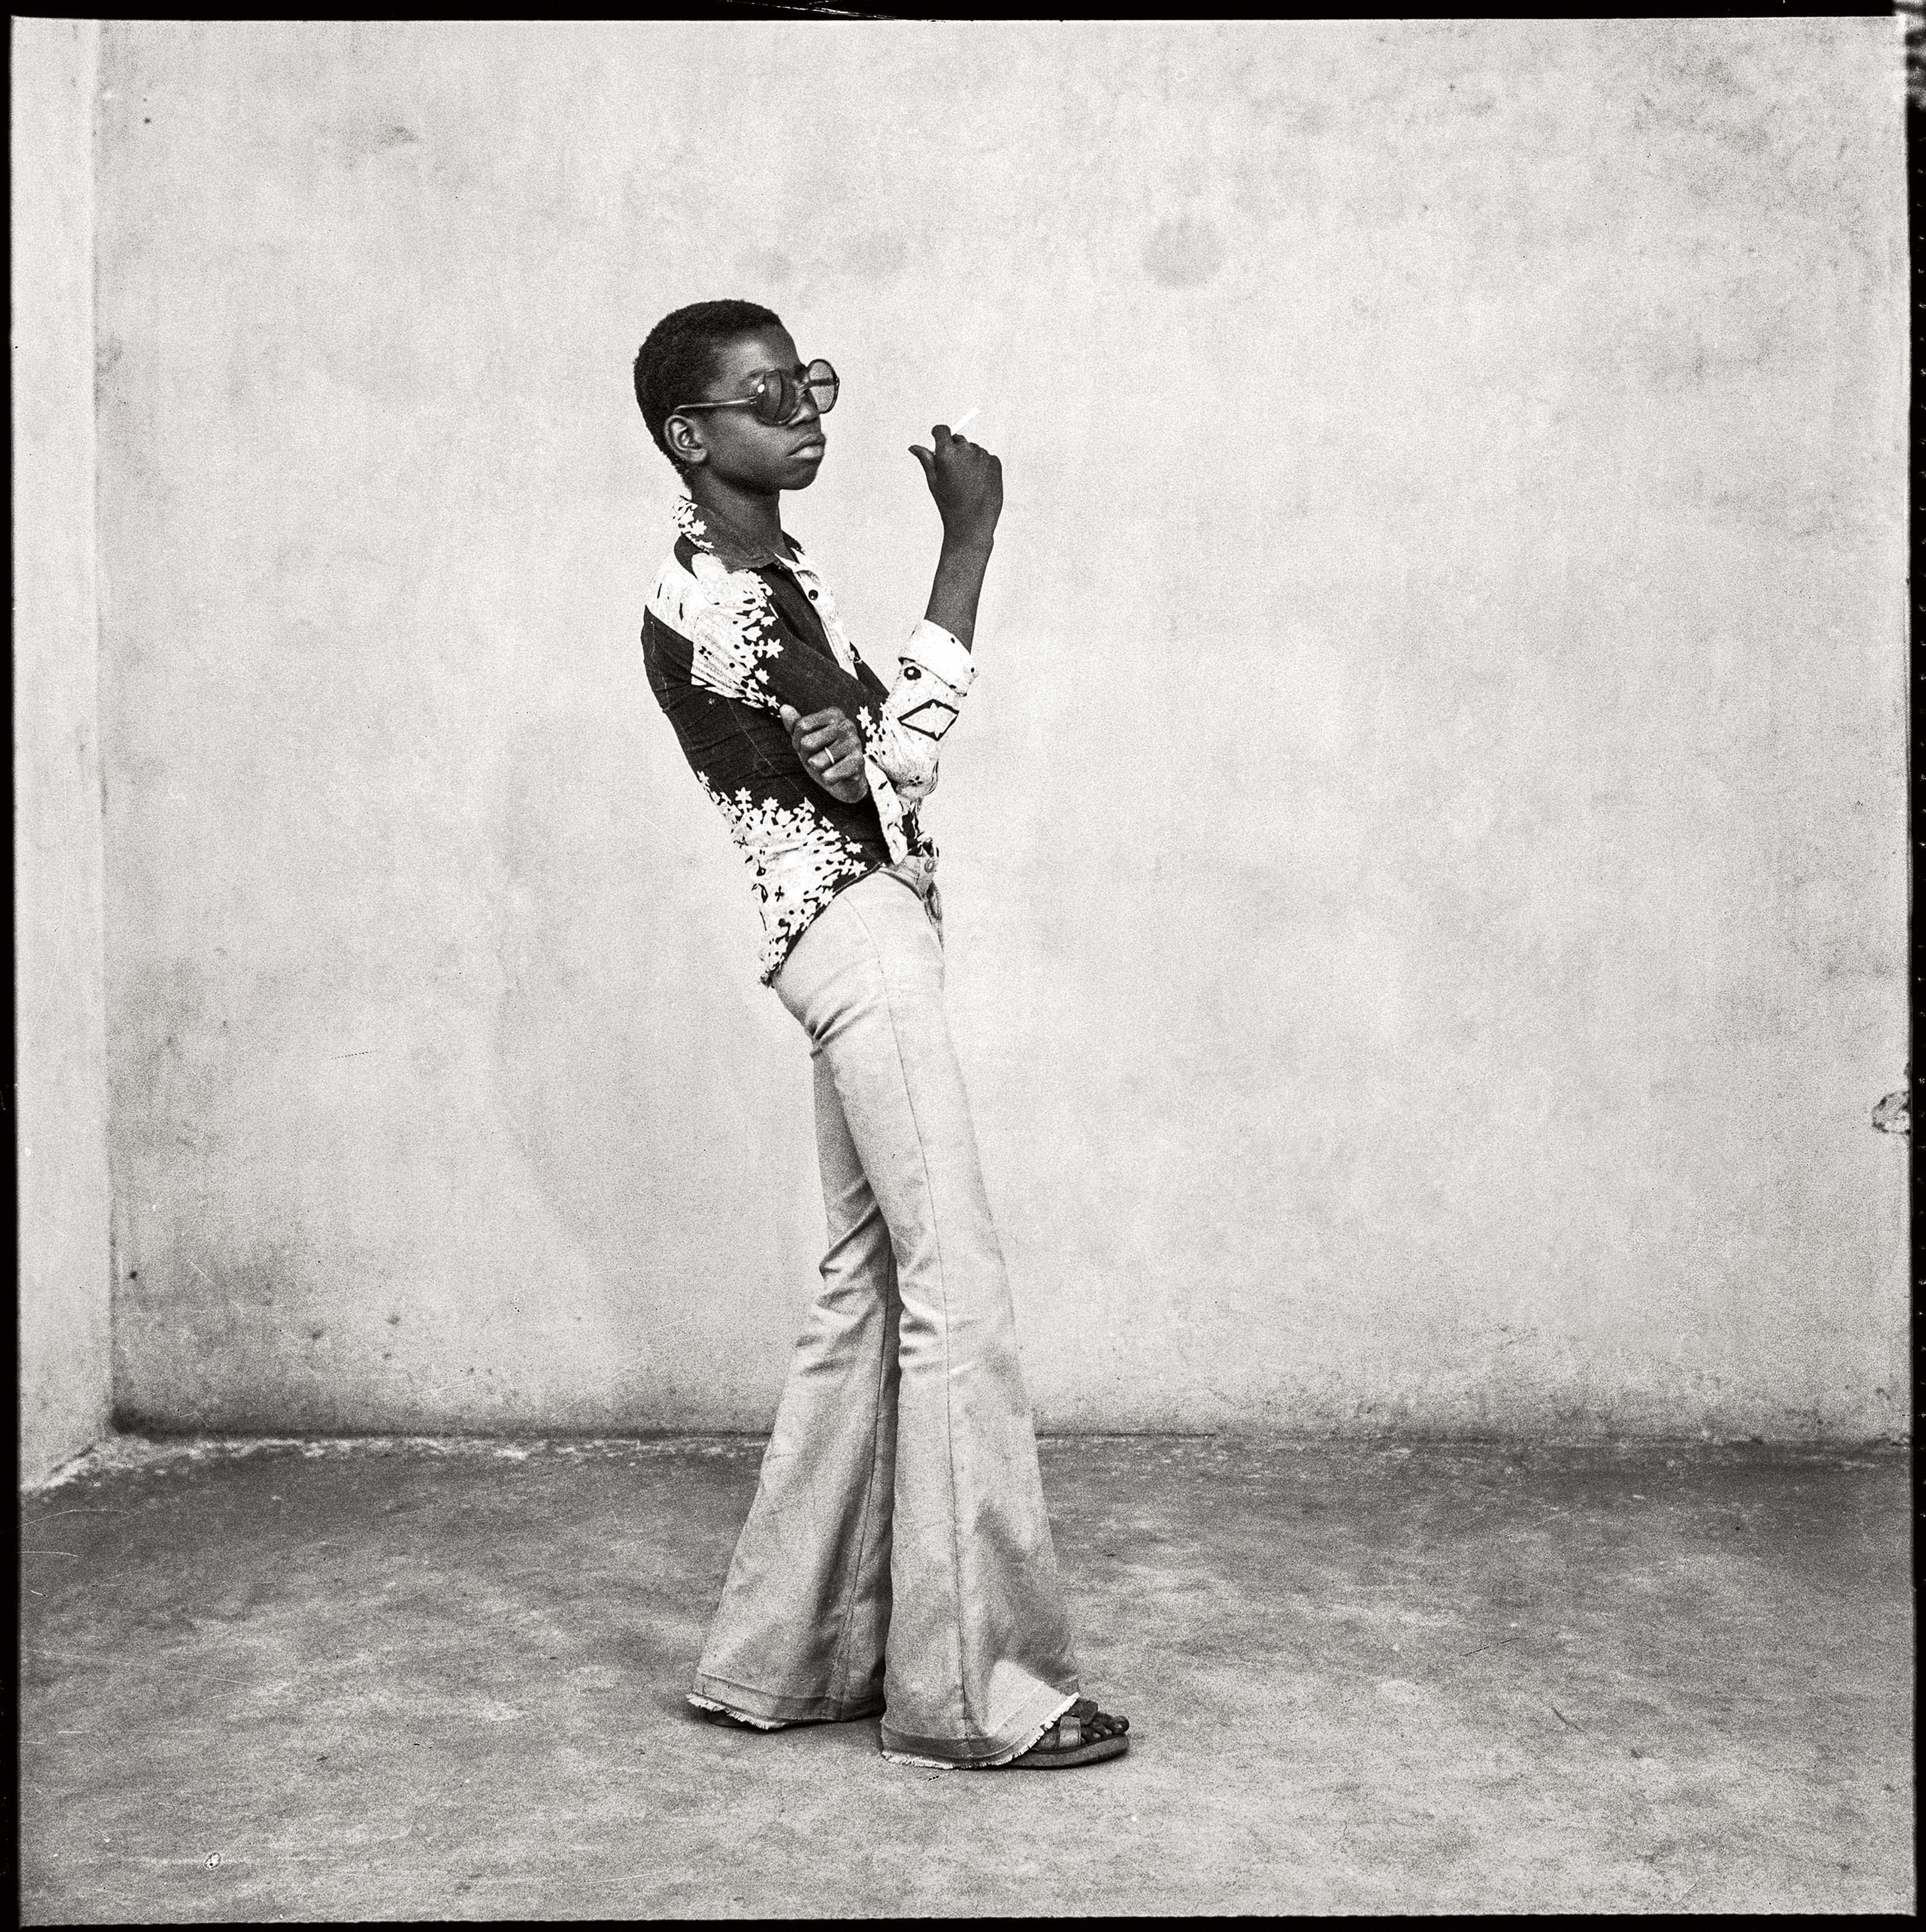 Malick Sidibé Un yéyé en position, 1963 Tirage gélatino-argentique 60,5 x 50,5 cm Collection Fondation Cartier pour l'art contemporain, Paris © Malick Sidibé